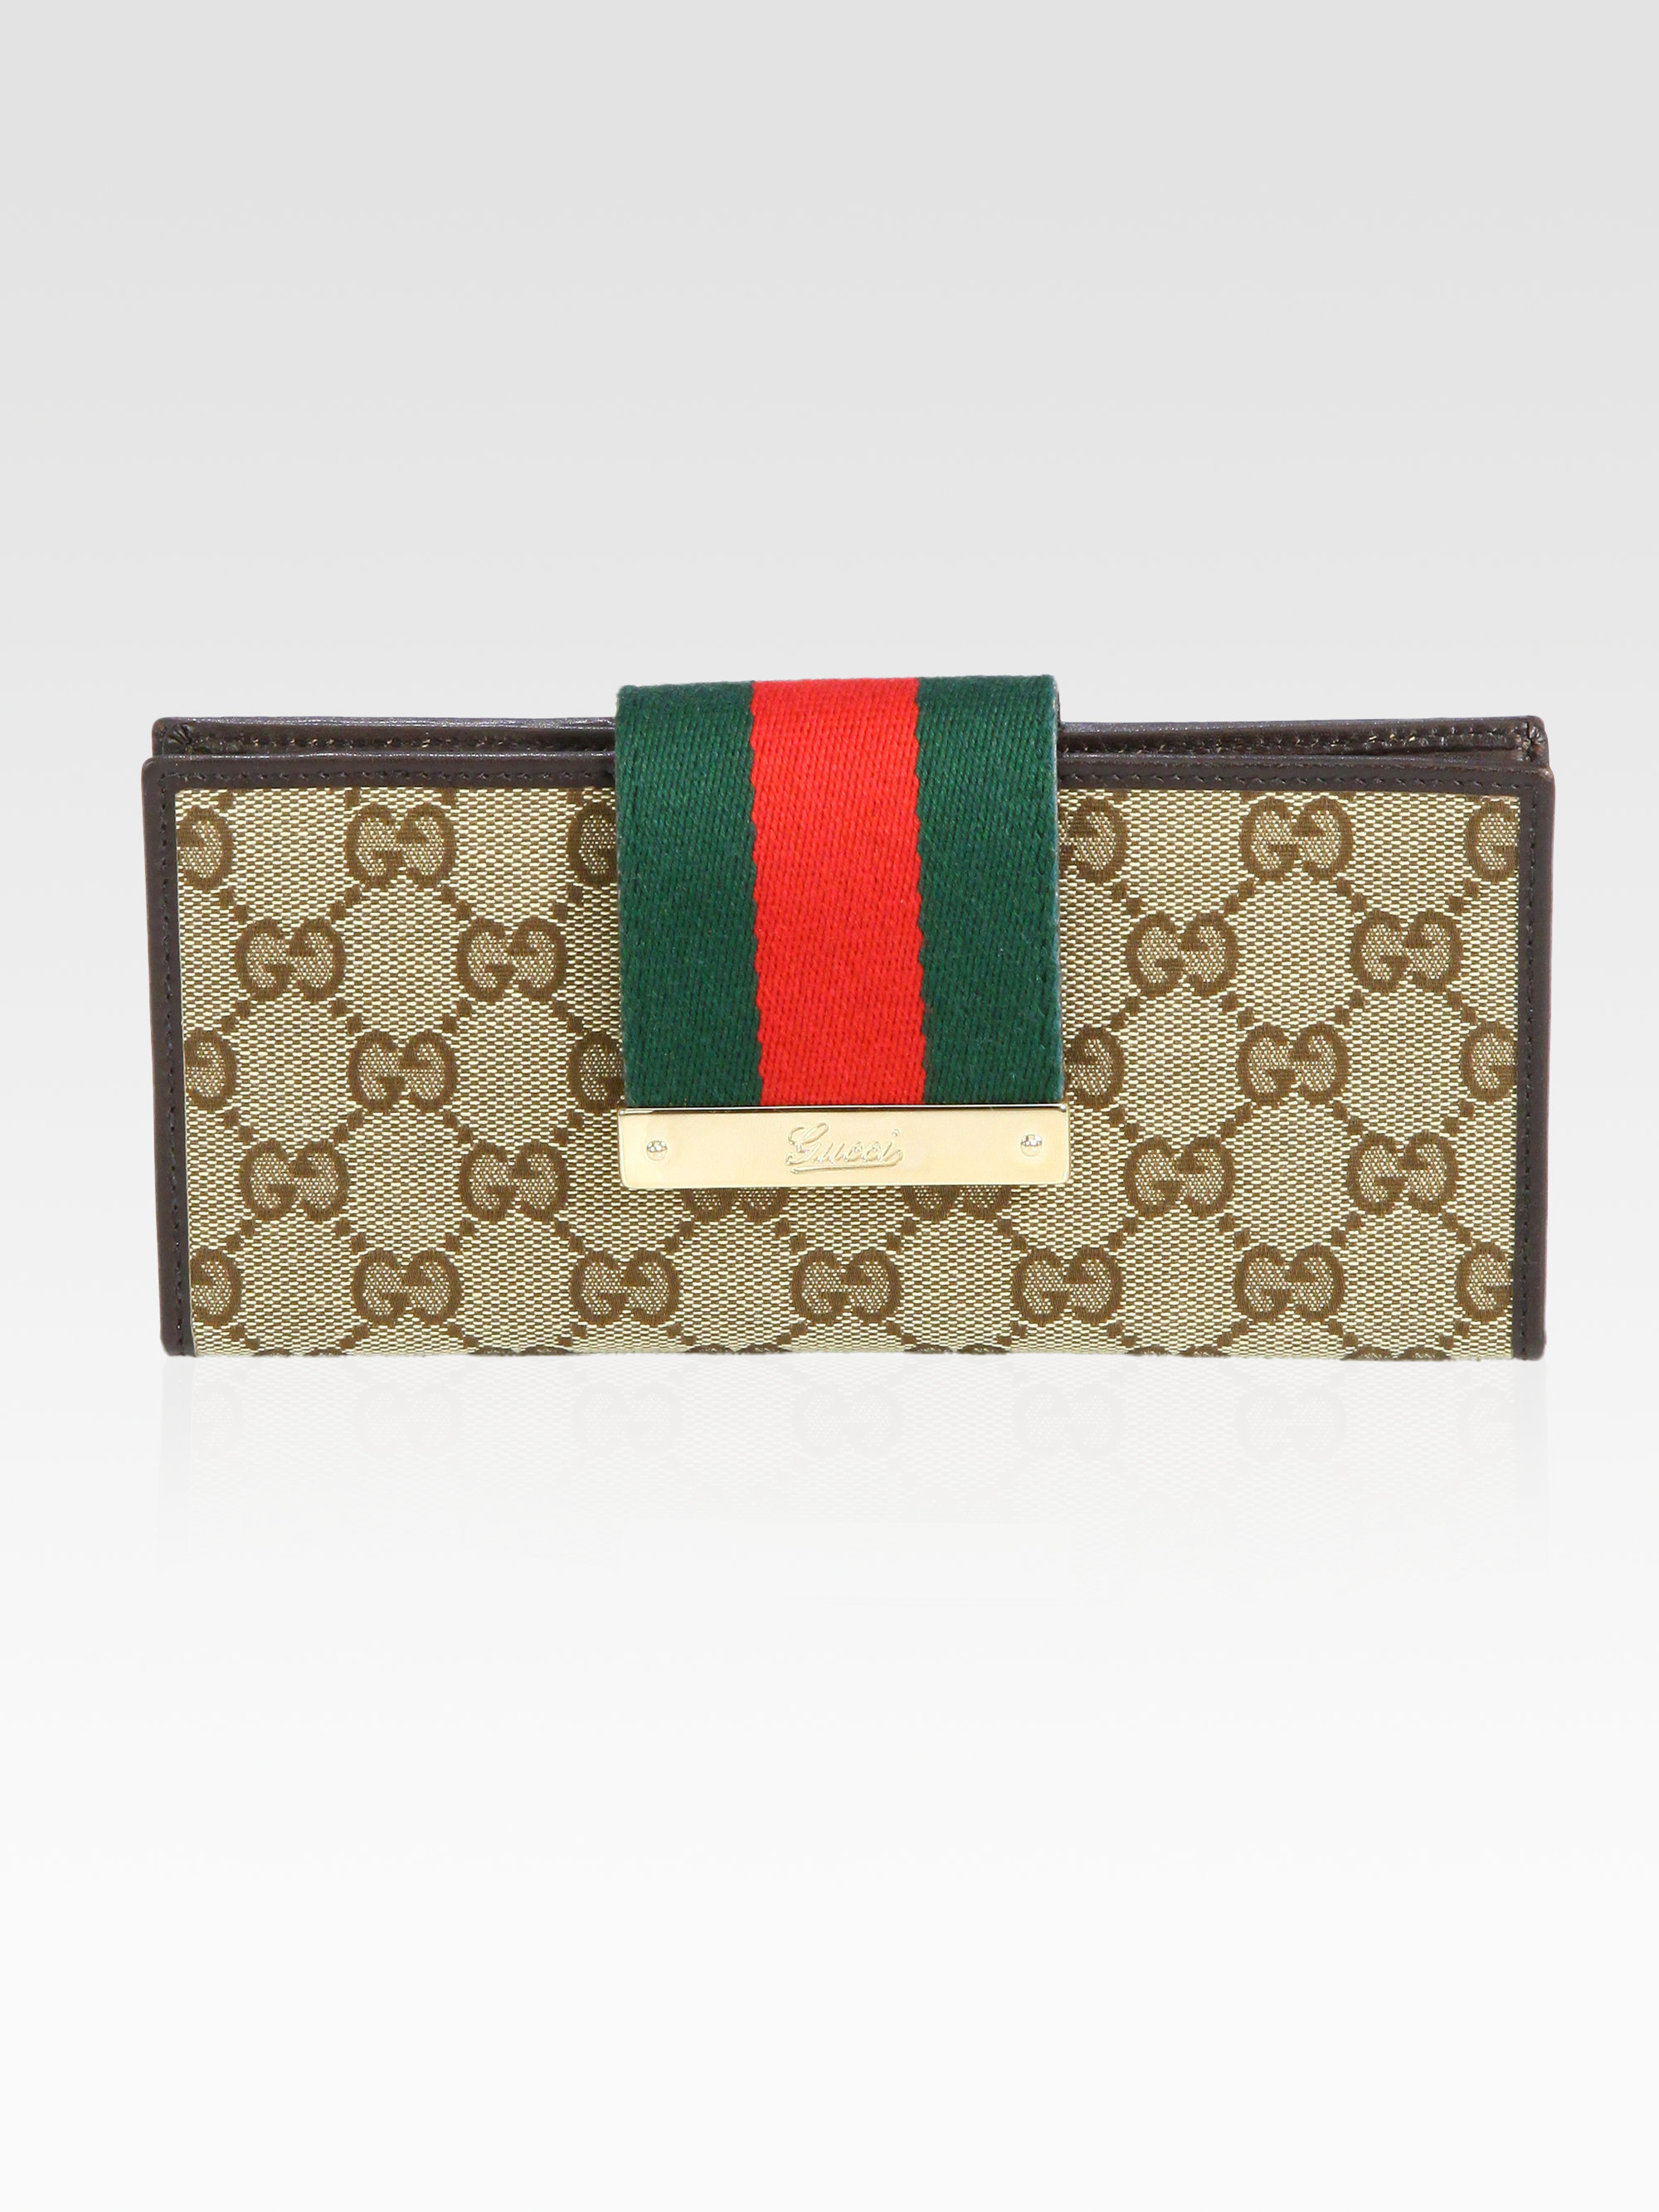 95bda3877db9 Gucci Ladies Web Gg Canvas Continental Wallet in Gray - Lyst